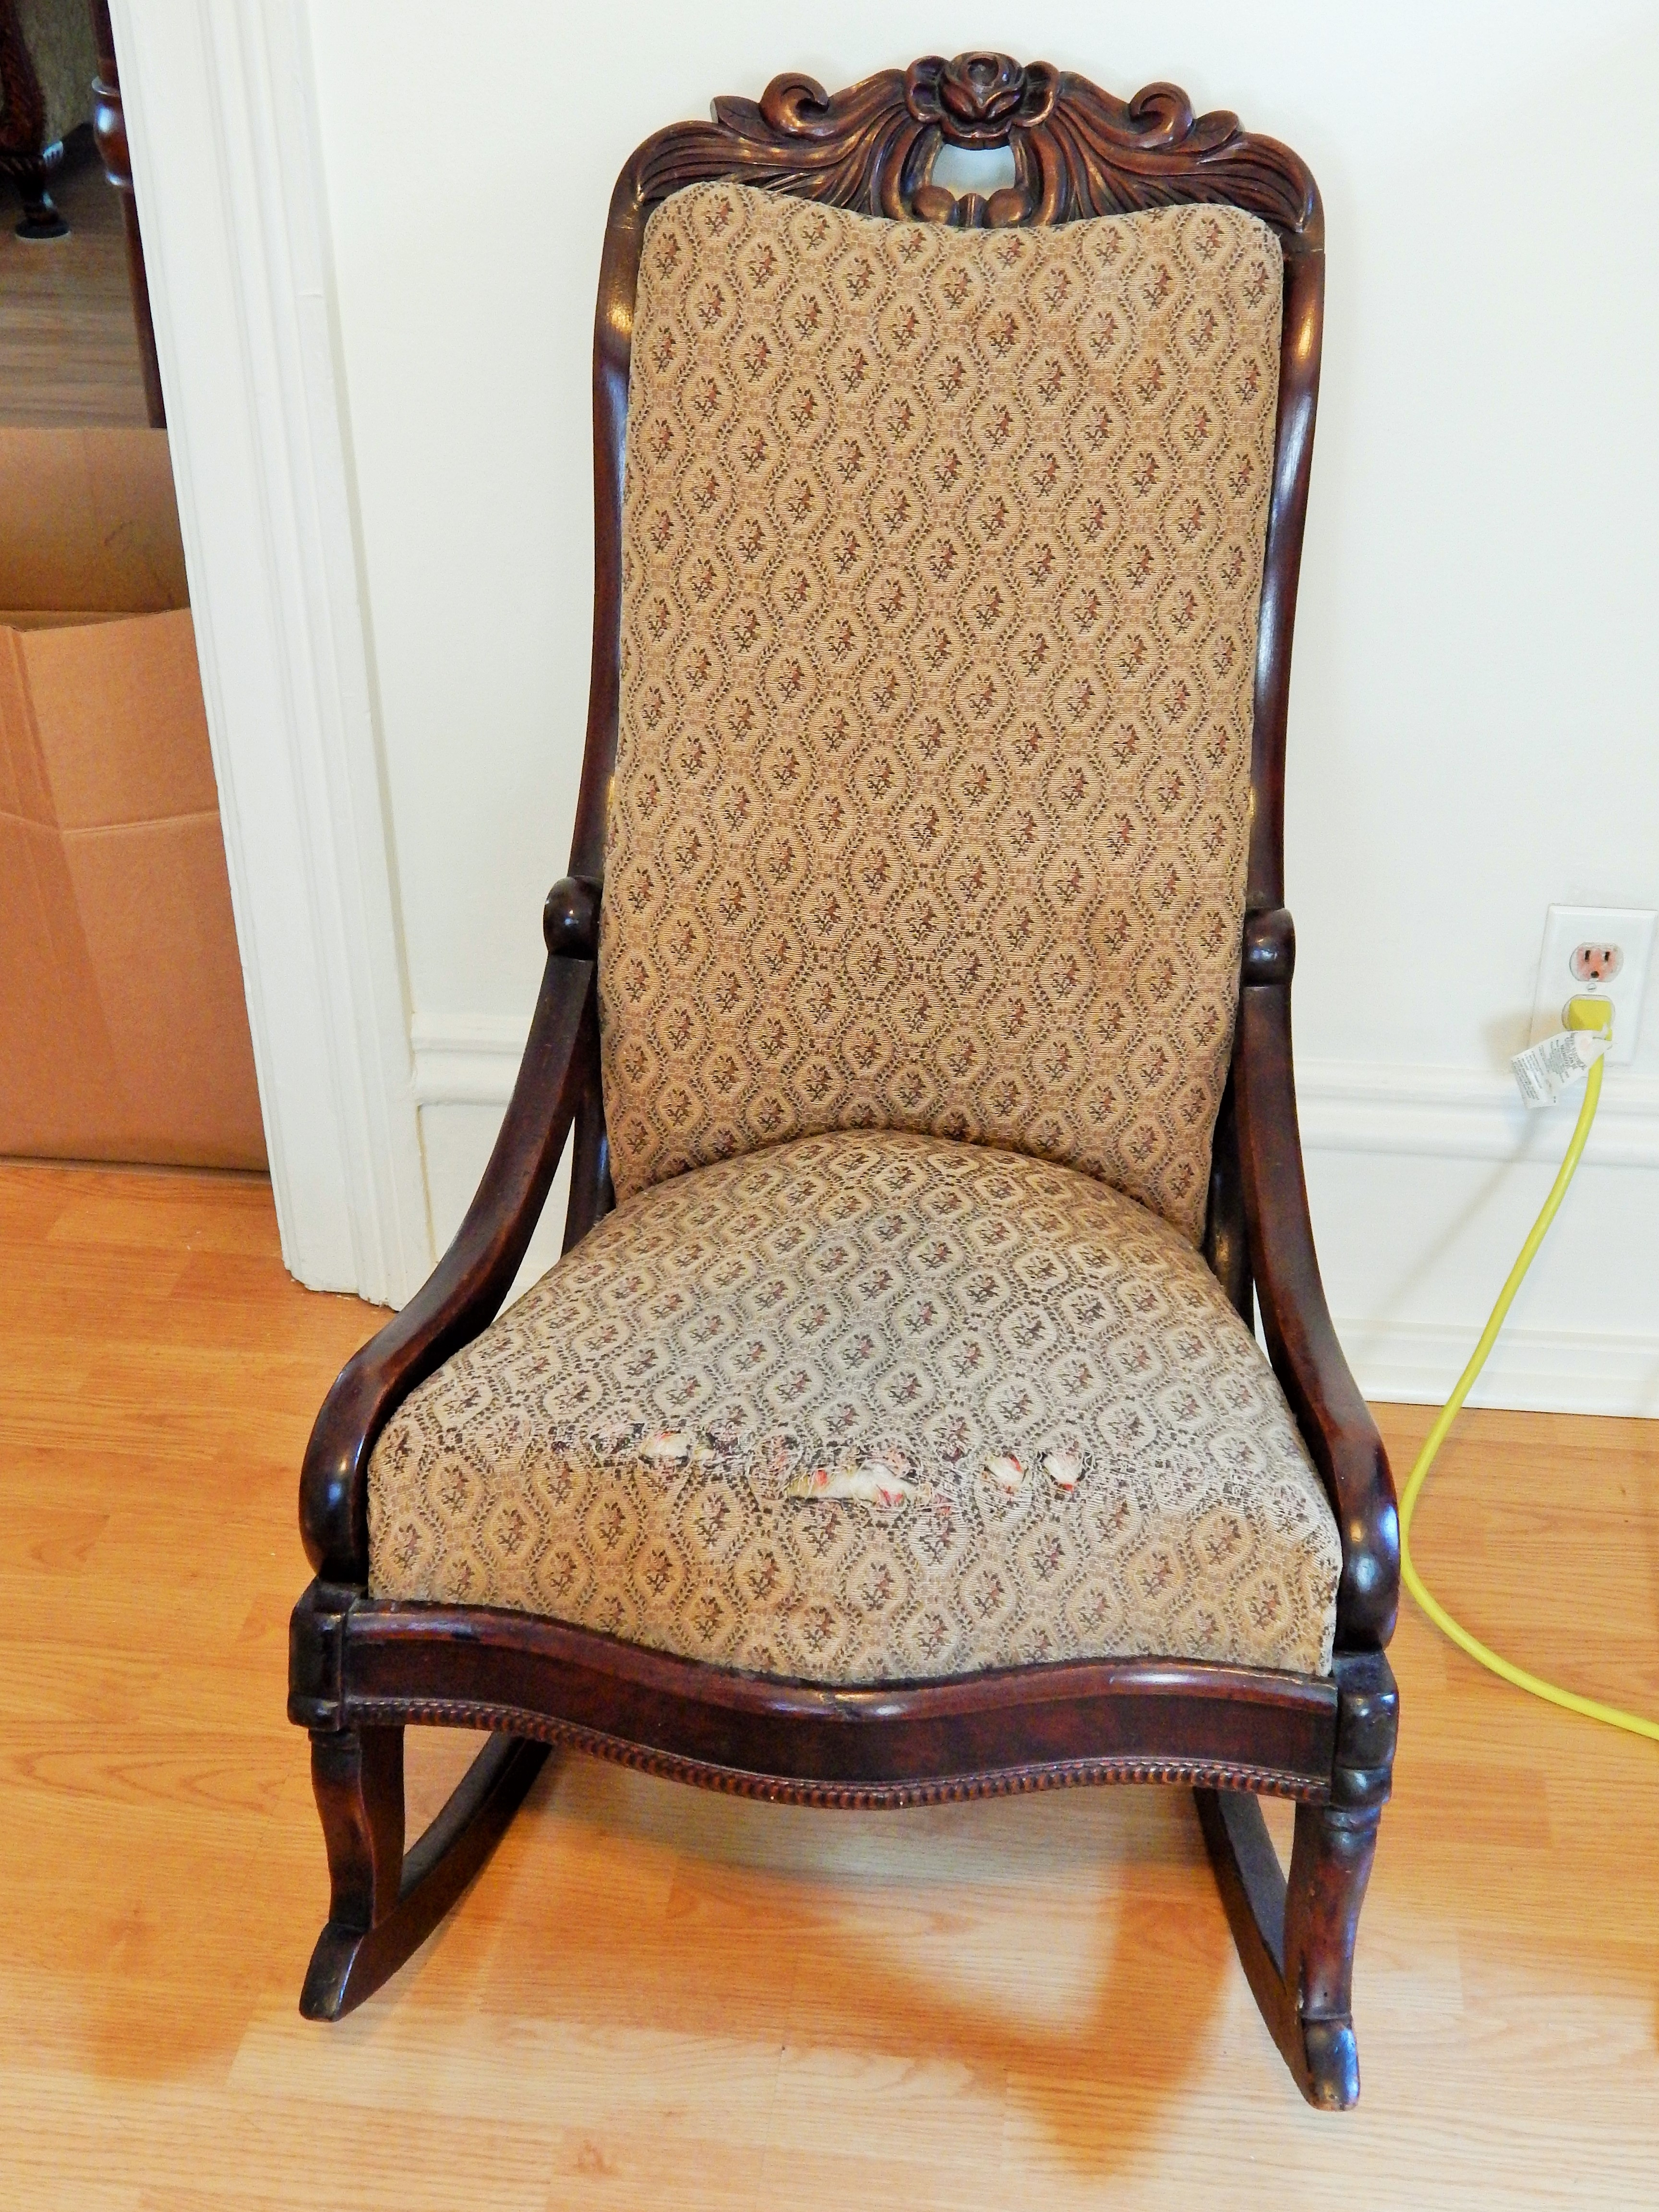 Antique Wicker Rocking Chair With Springs | Best Home Chair Decoration Throughout Rocking Chairs With Springs (#6 of 15)